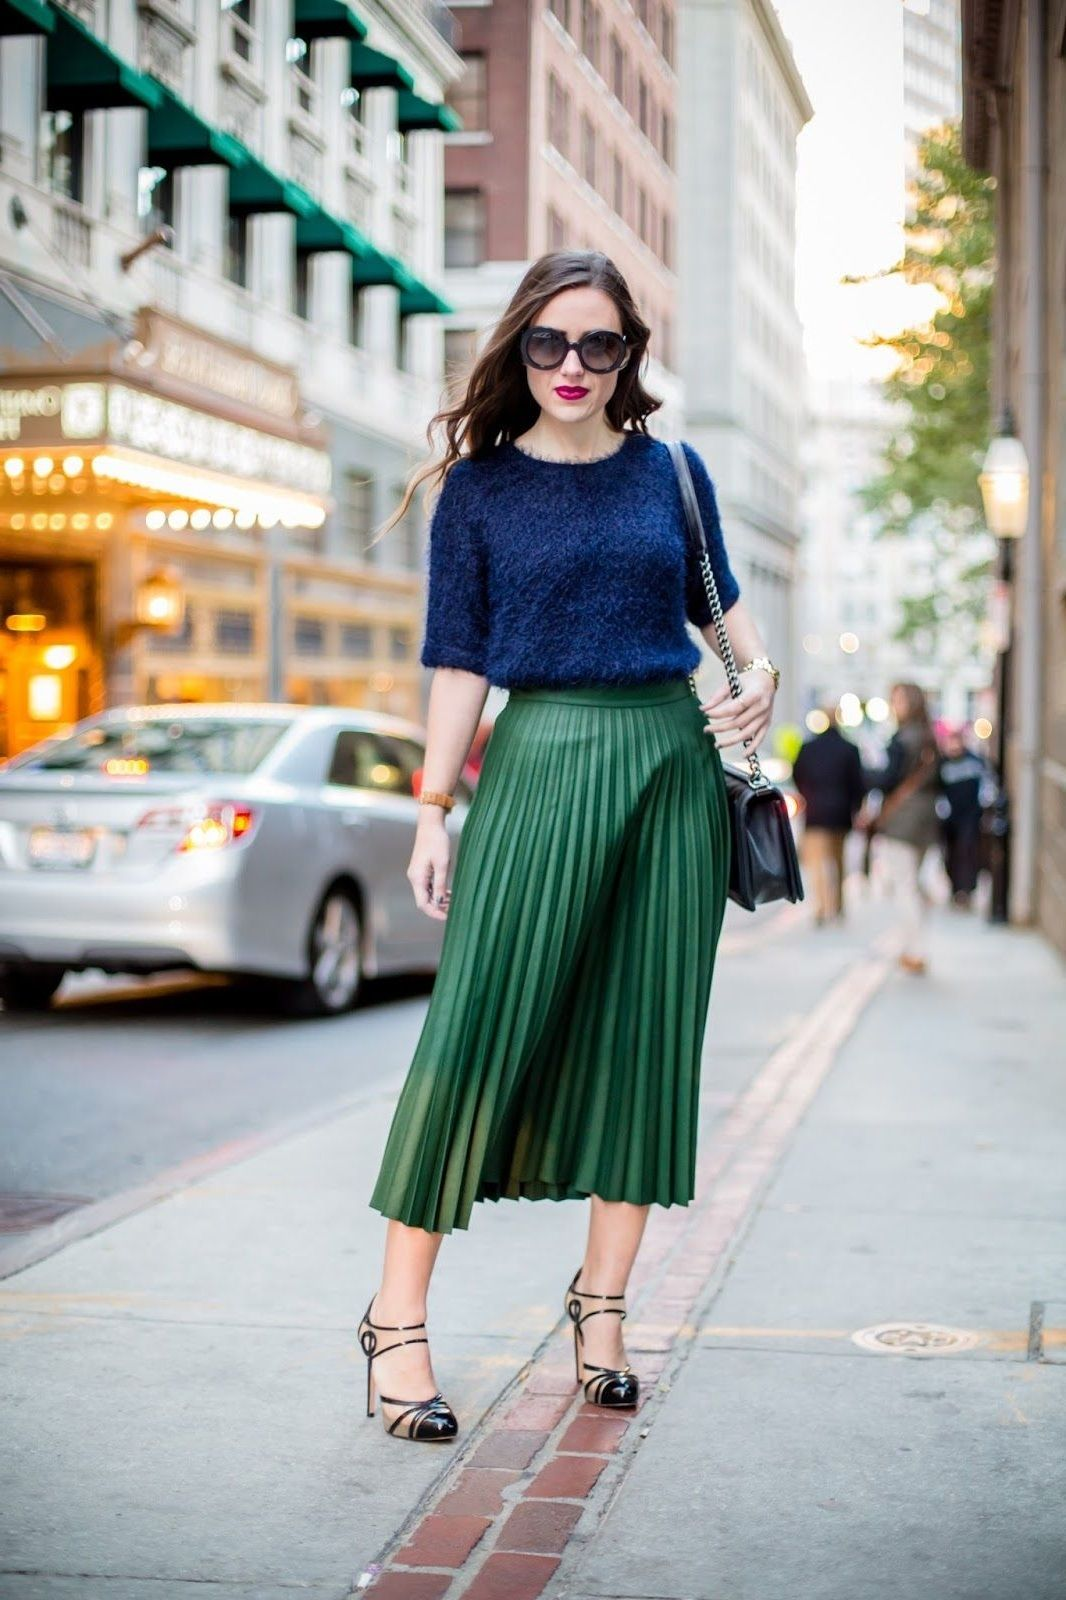 ... skirt  ) New dark green pleated high waist skirt midi length fall autumn  winter casual long green pleated skirt ladies outfit for work casual spring  ...